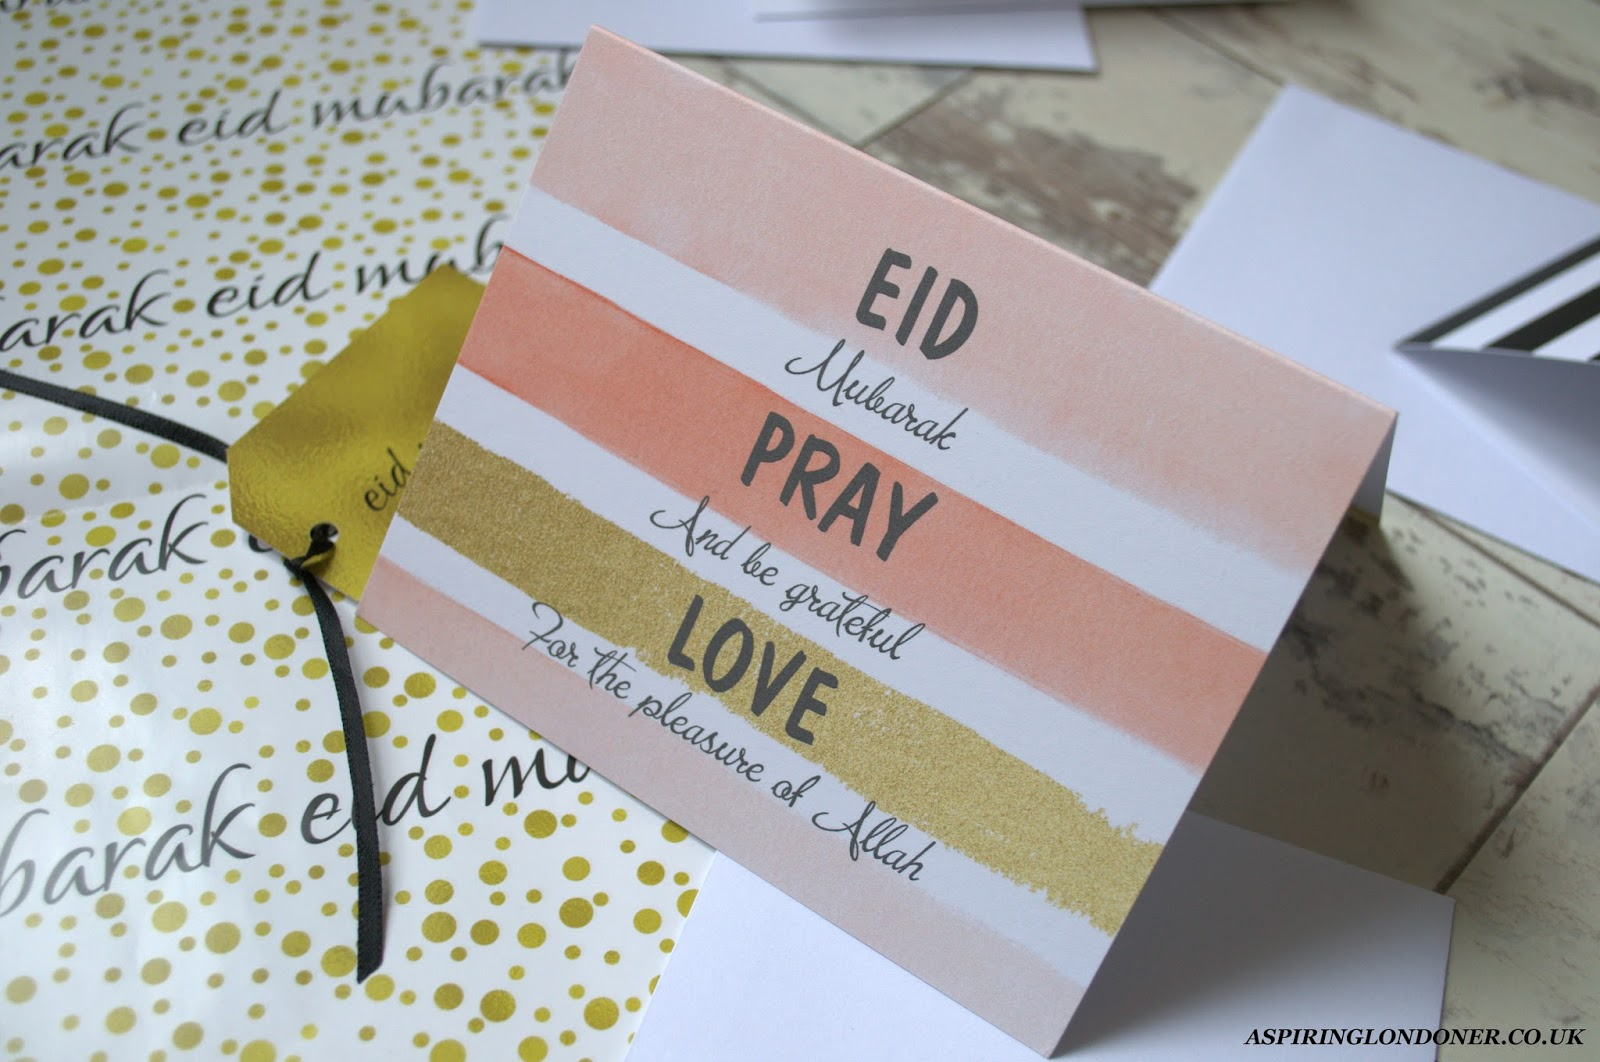 Eid, Pray, Love Eid Greetings Card - Aspiring Londoner